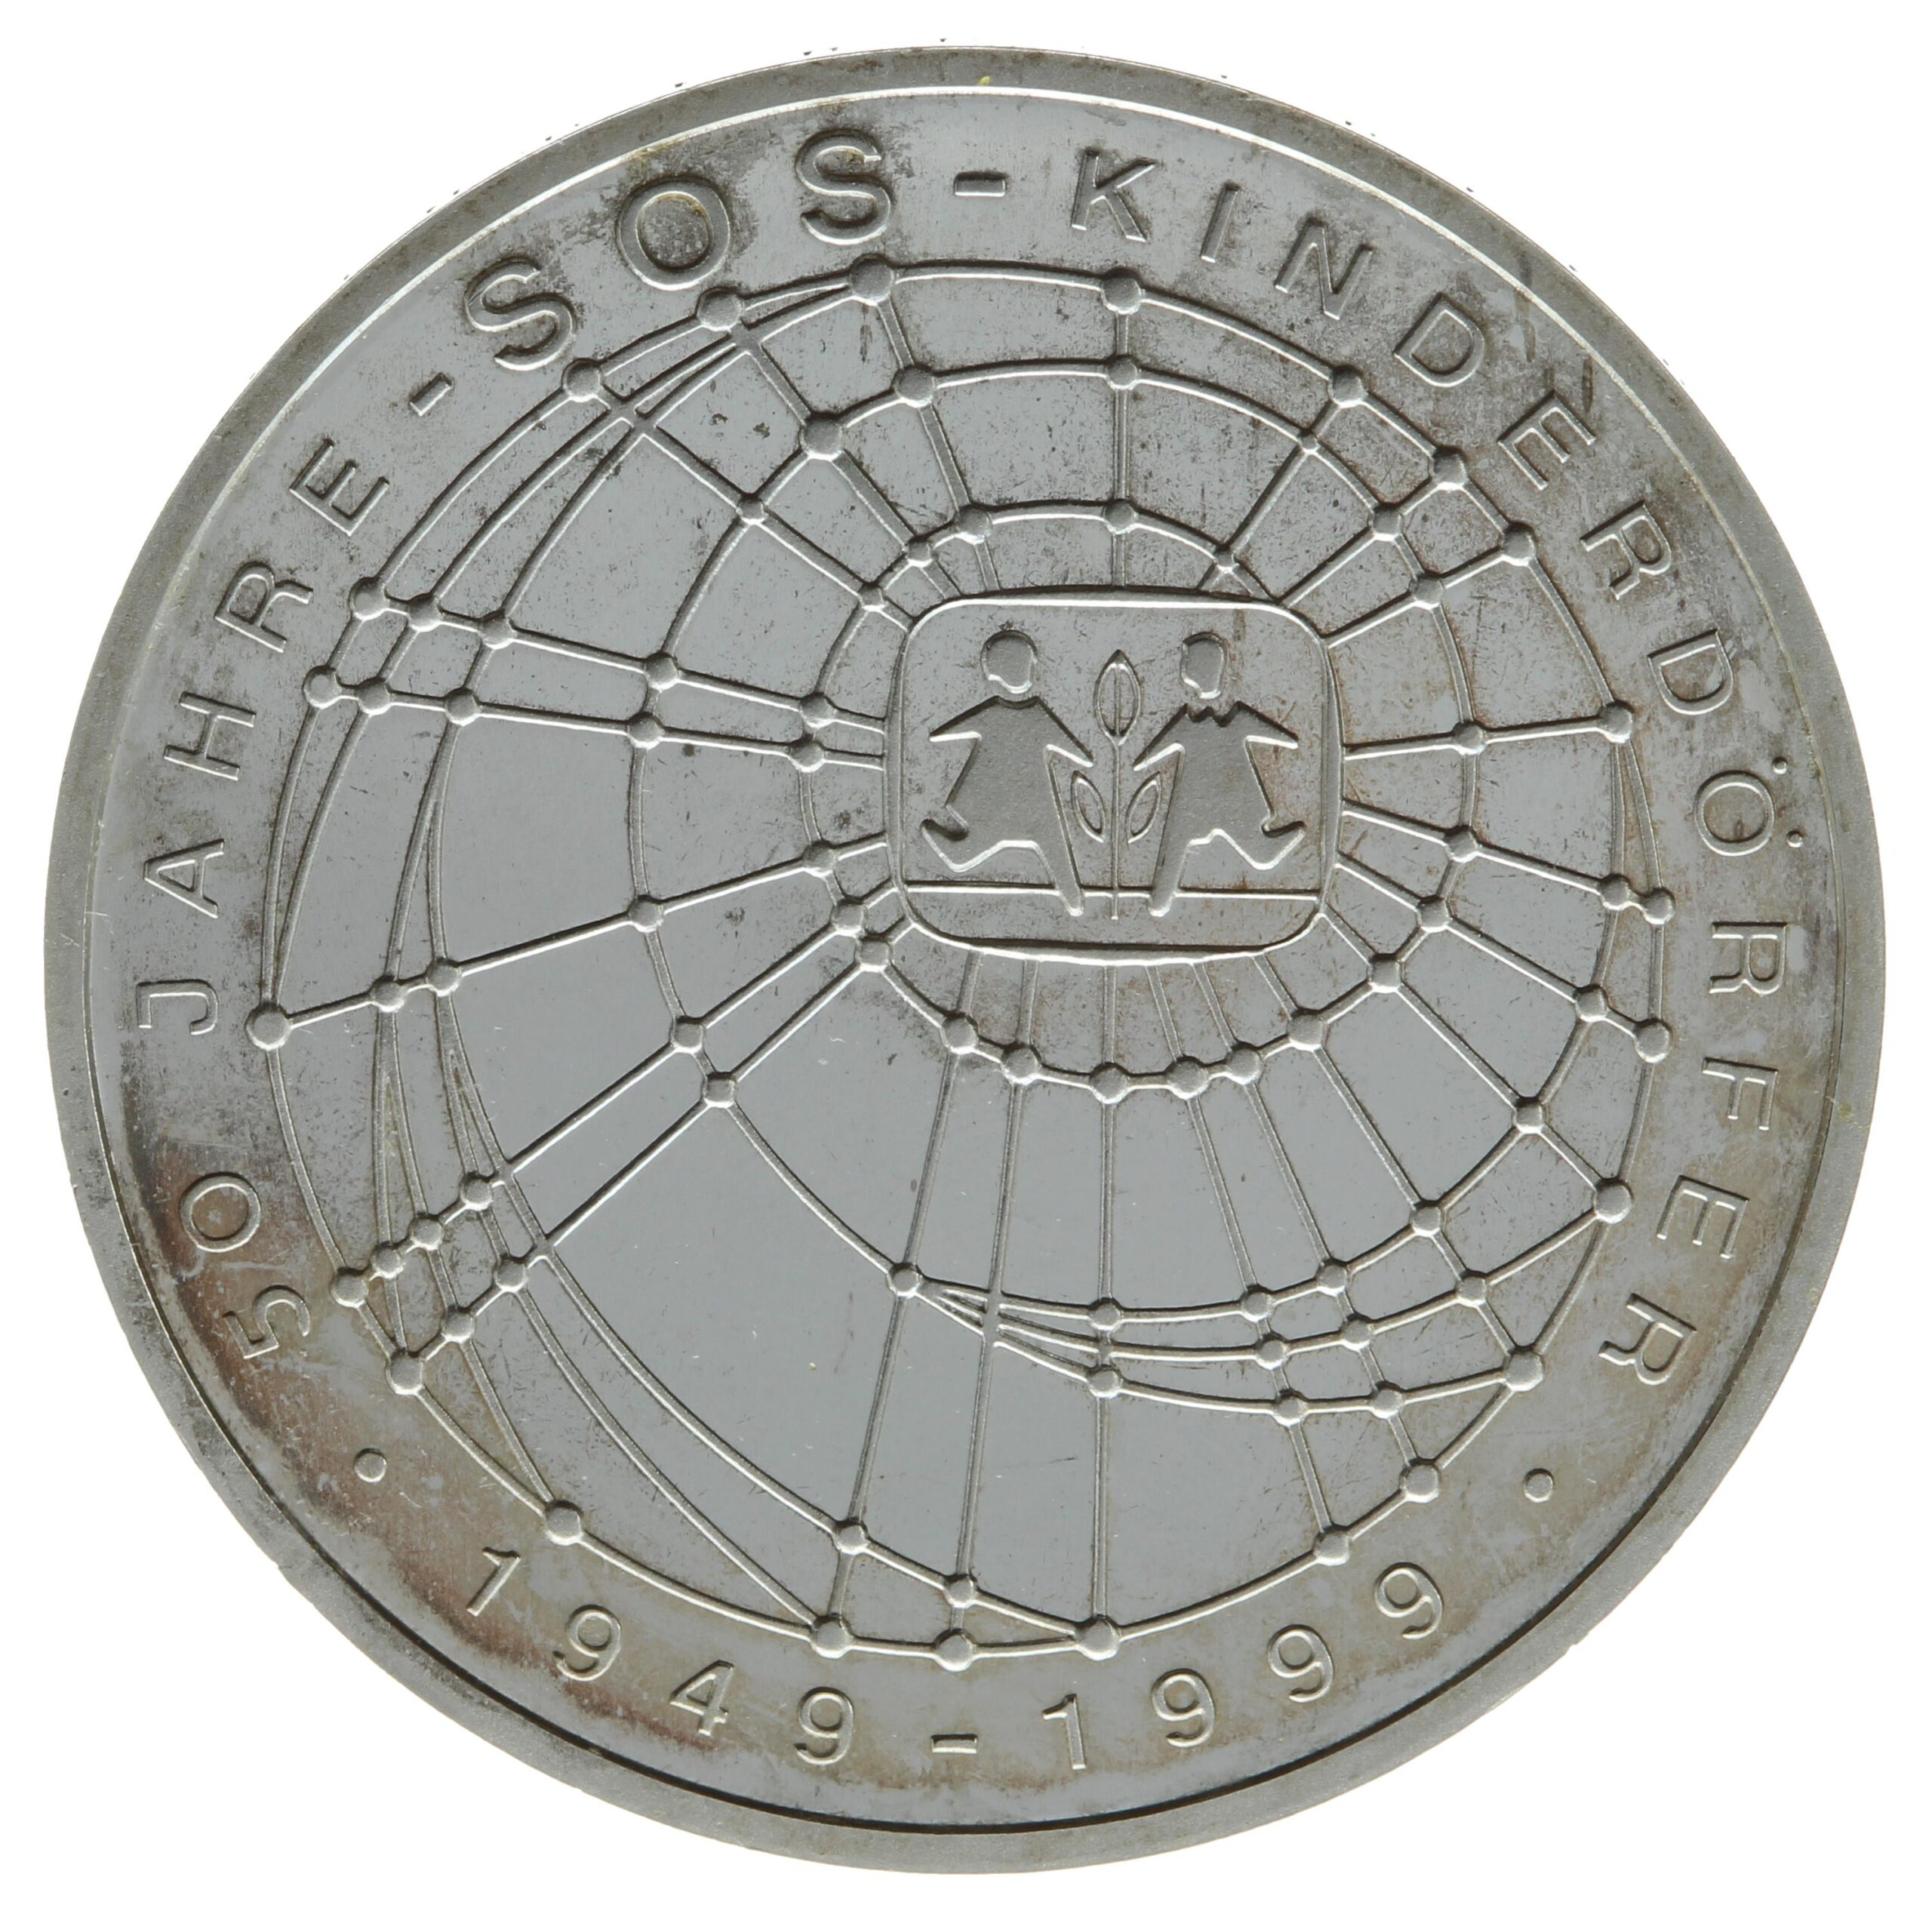 DE 10 Deutsche Mark 1999 F